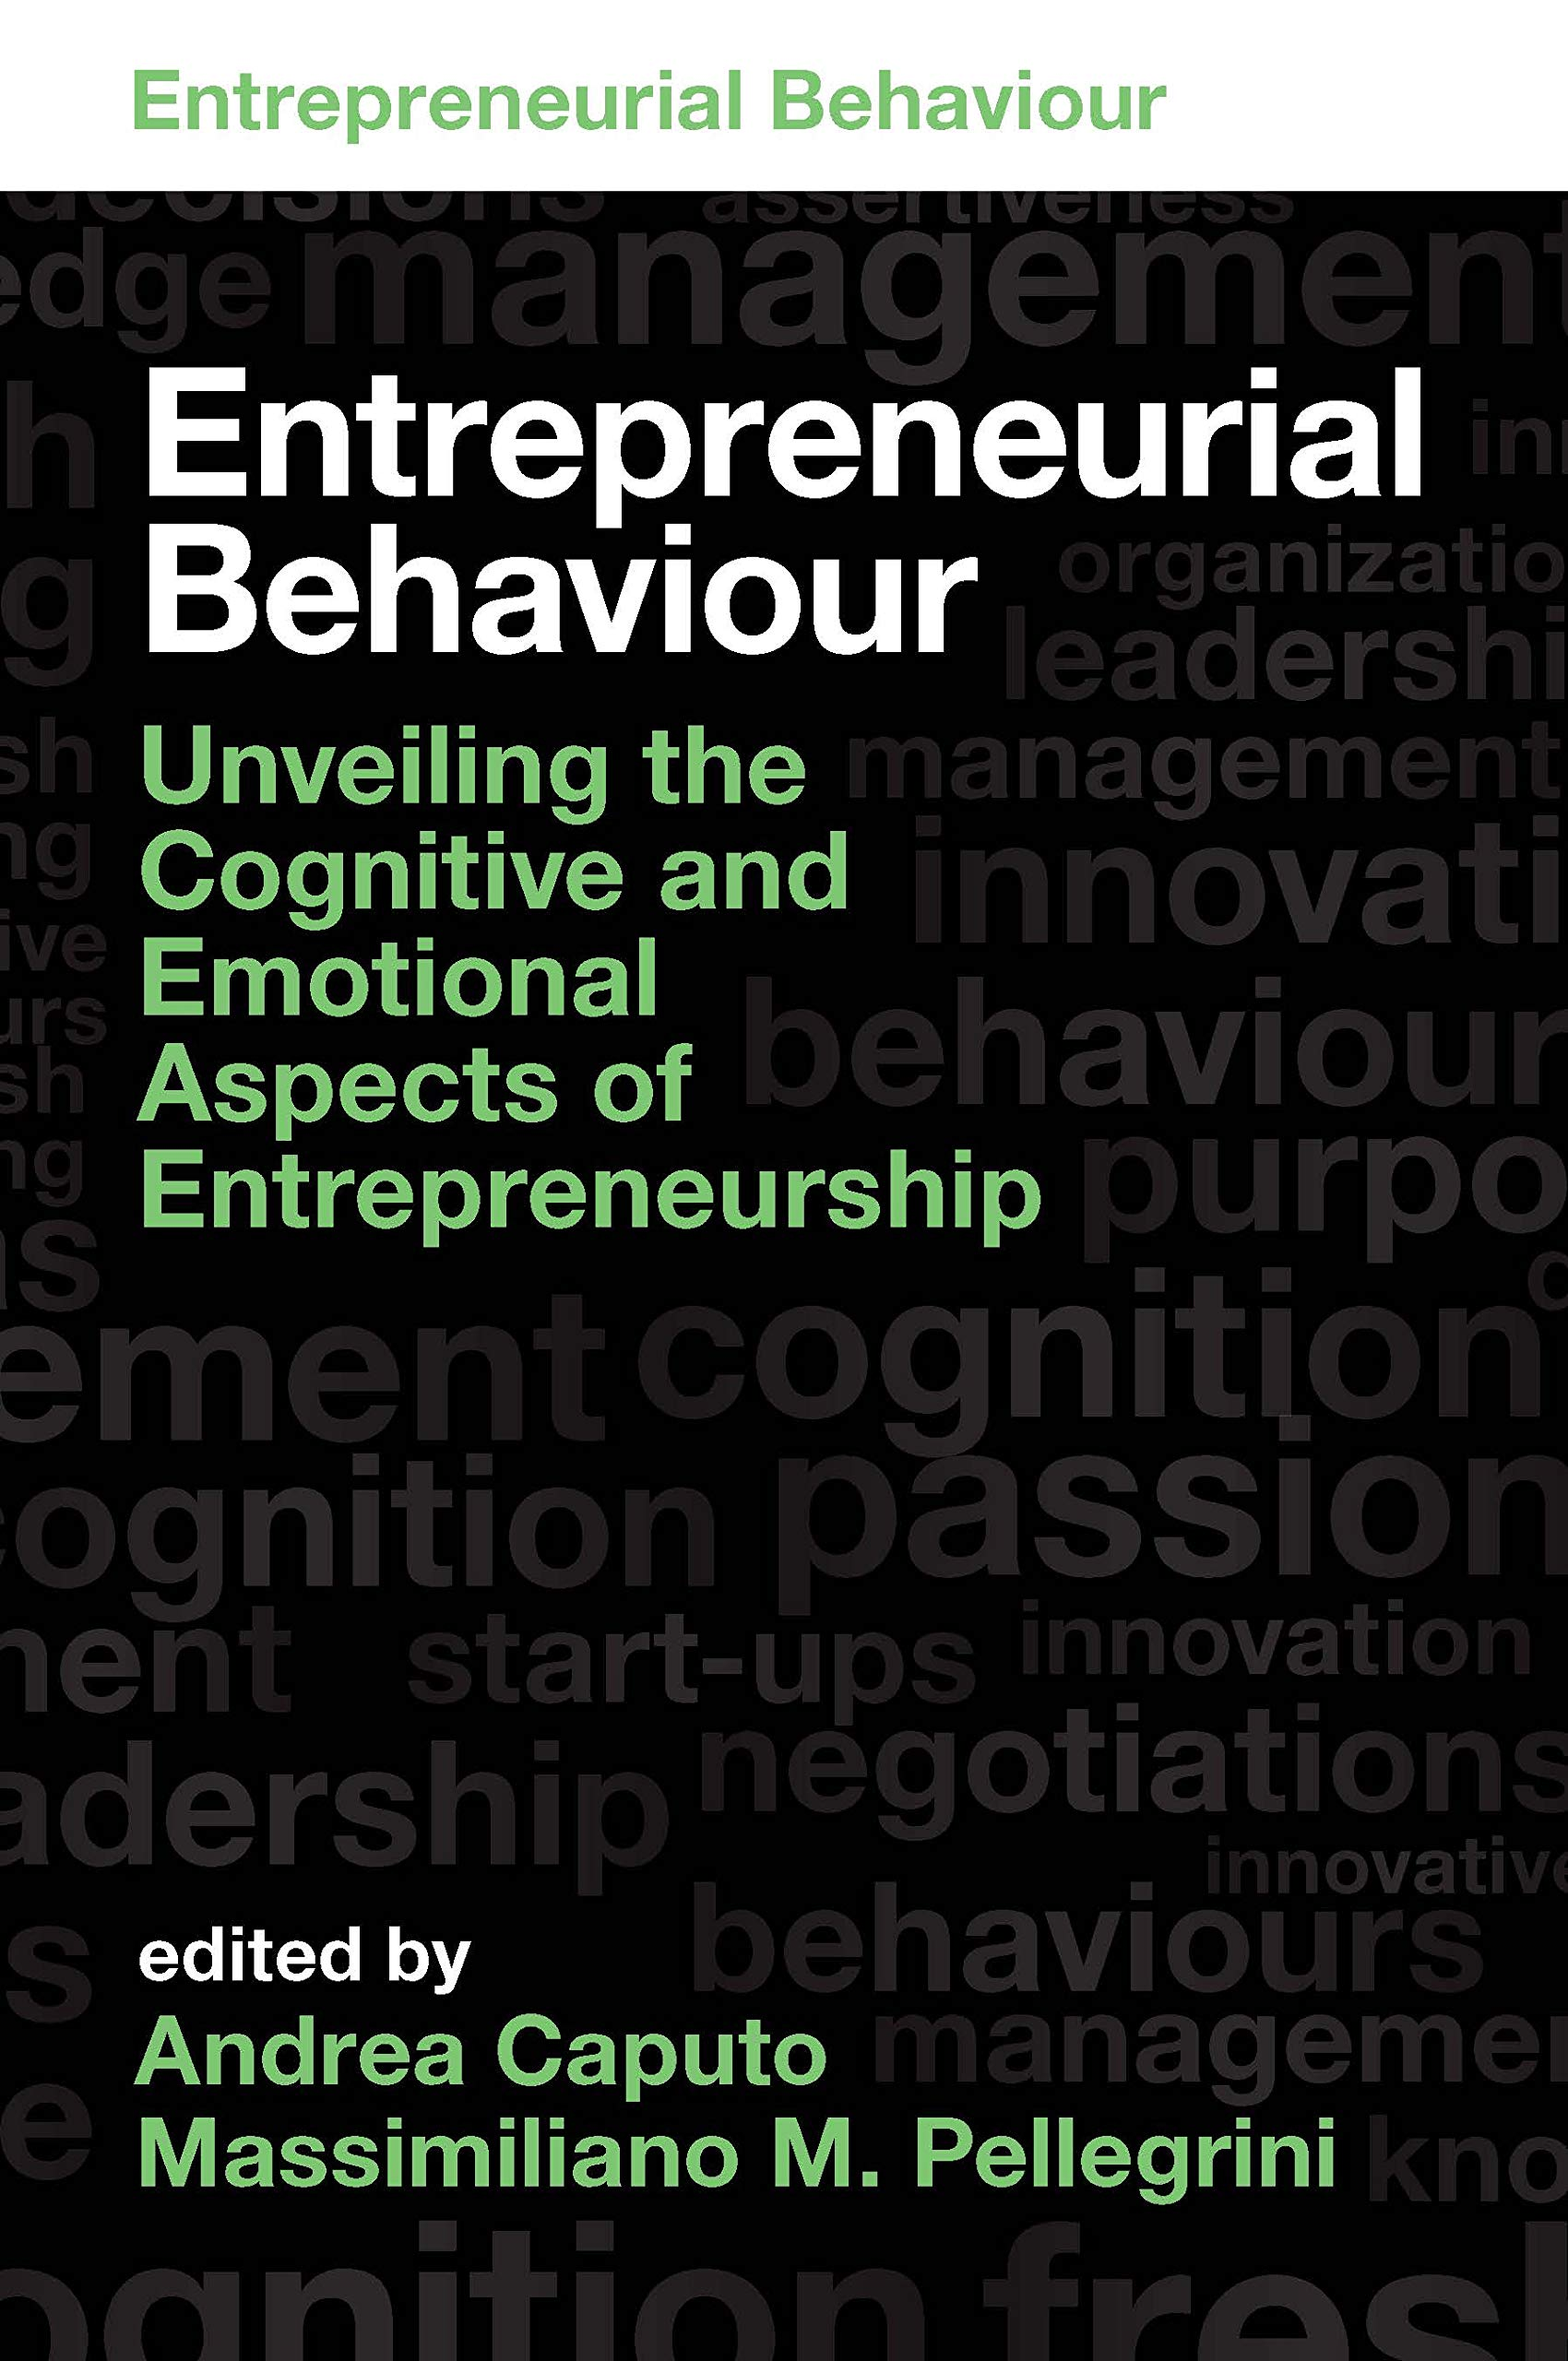 Entrepreneurial Behaviour: Unveiling the Cognitive and Emotional Aspects of Entrepreneurship